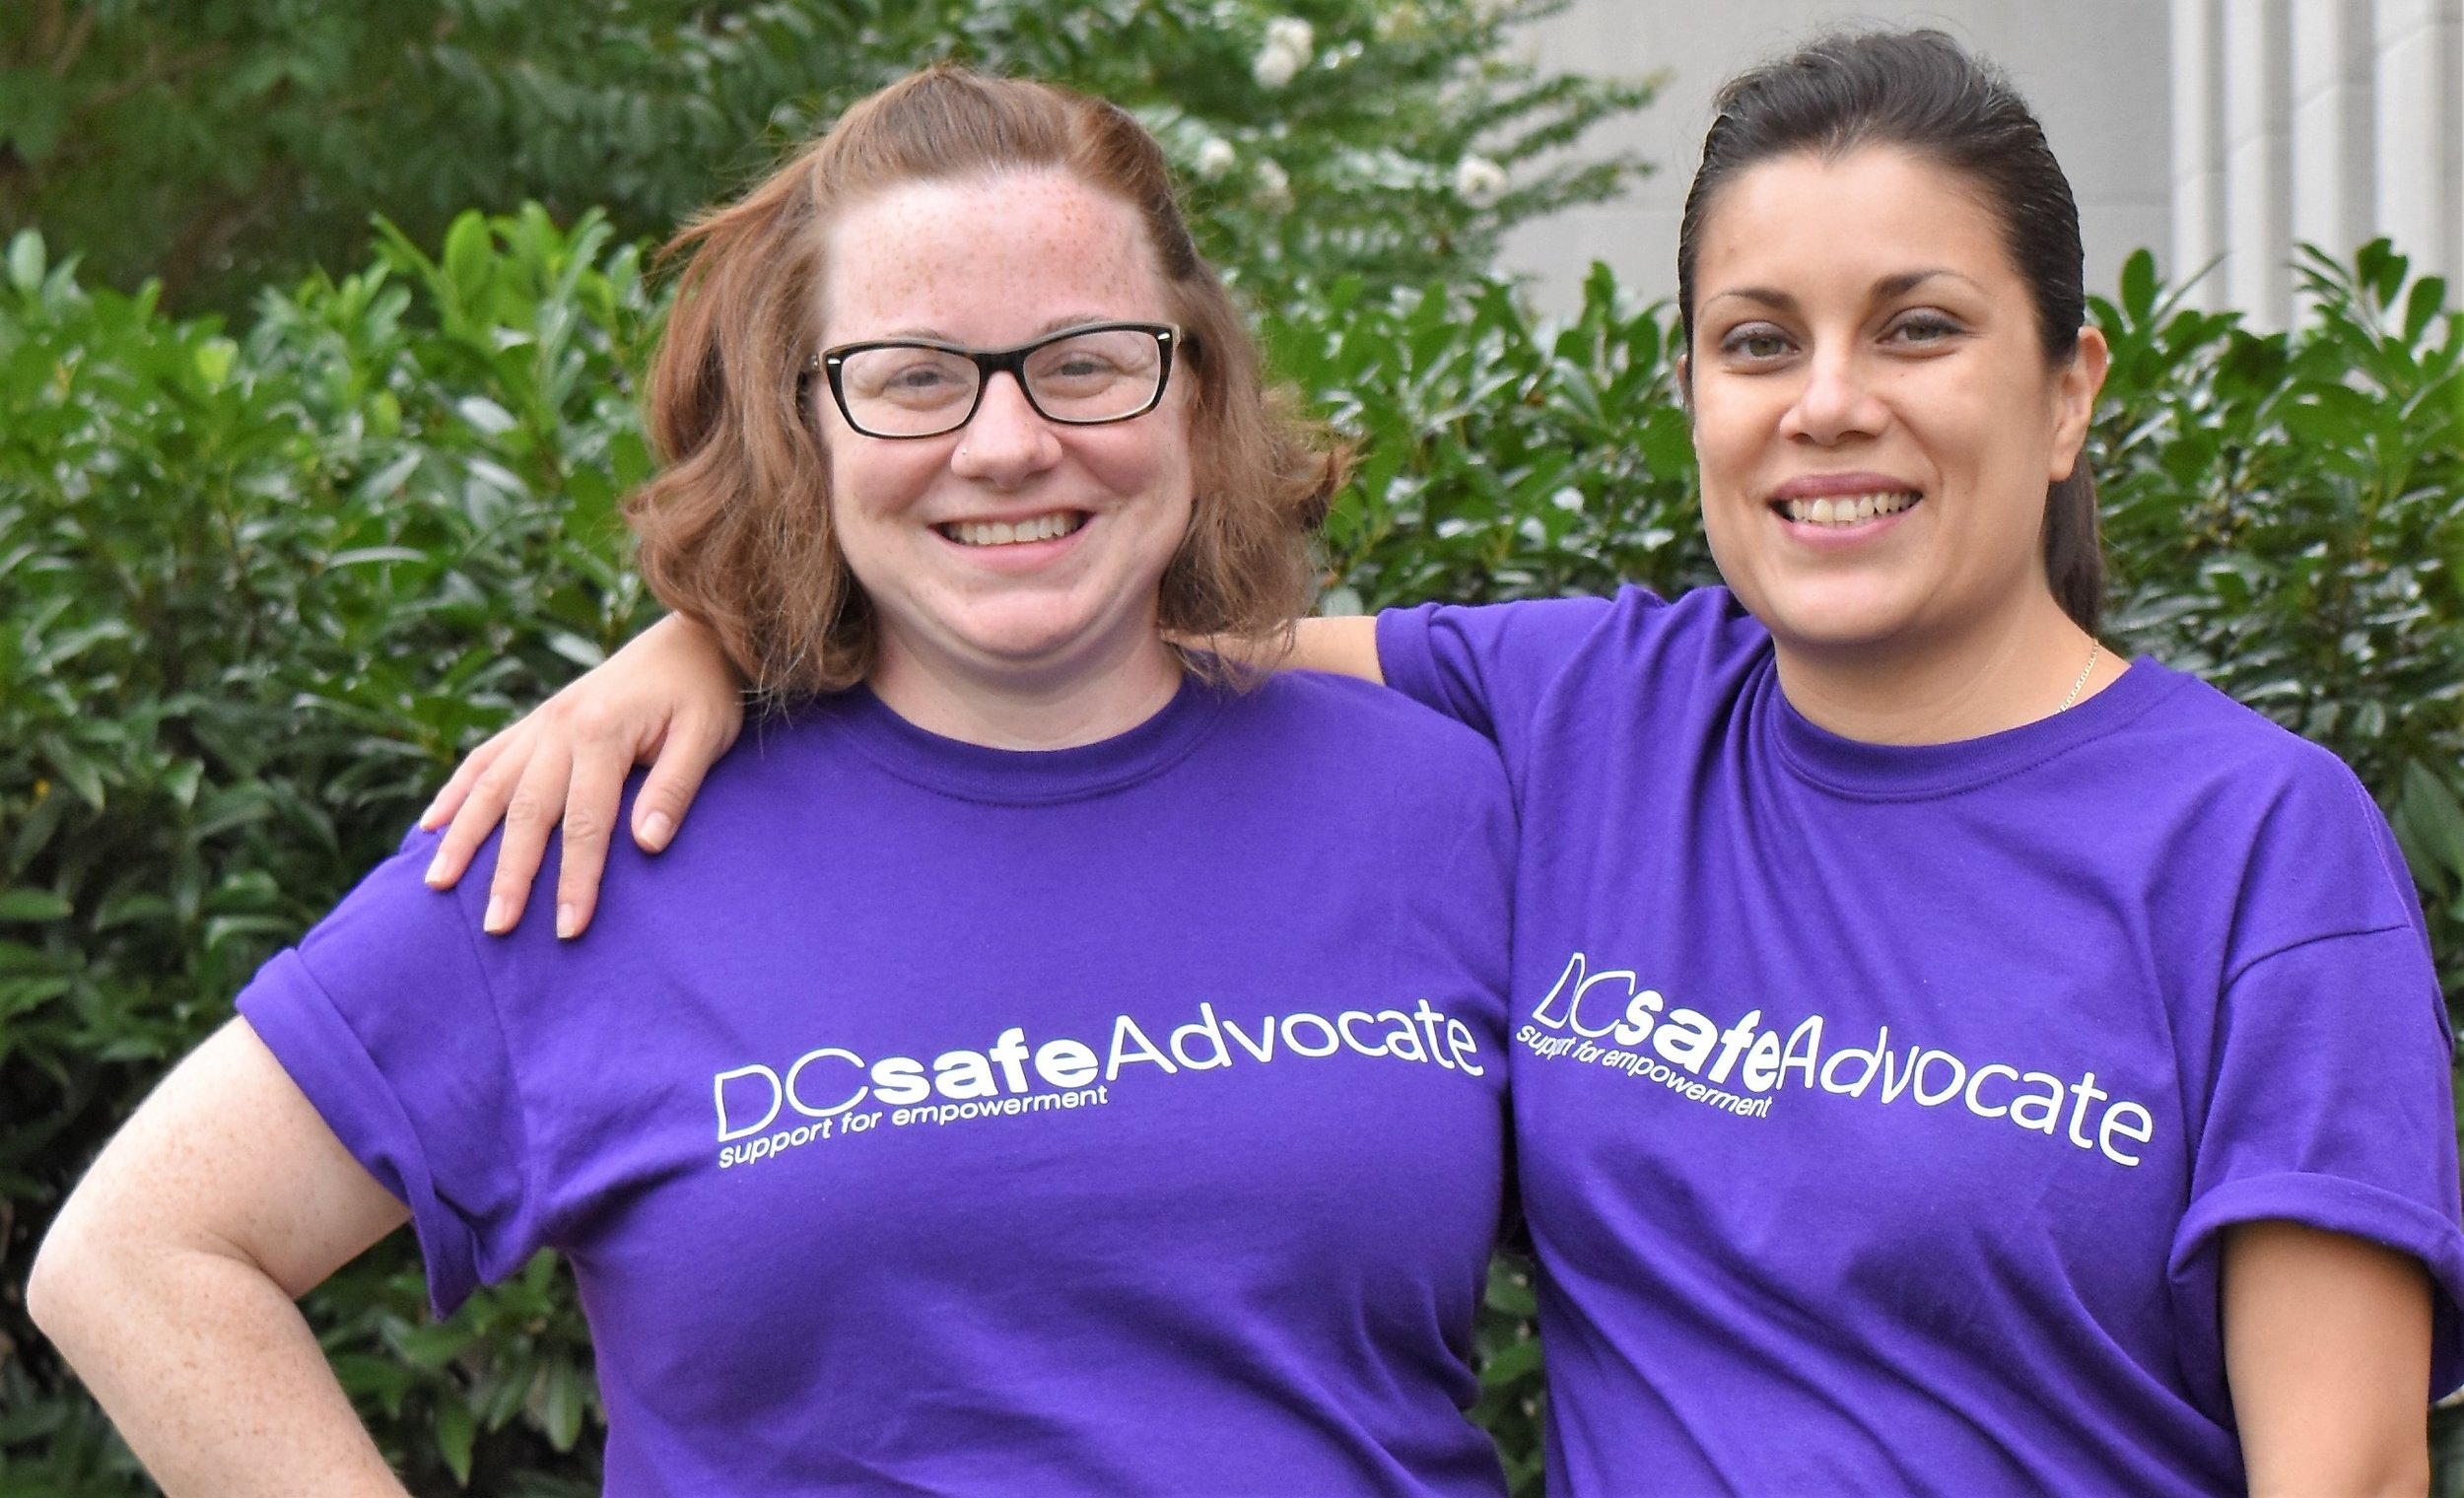 In need of our services? - If you are a survivor of domestic violence in need of our services, please click below to learn more about how to get connected to a DC SAFE Advocate.